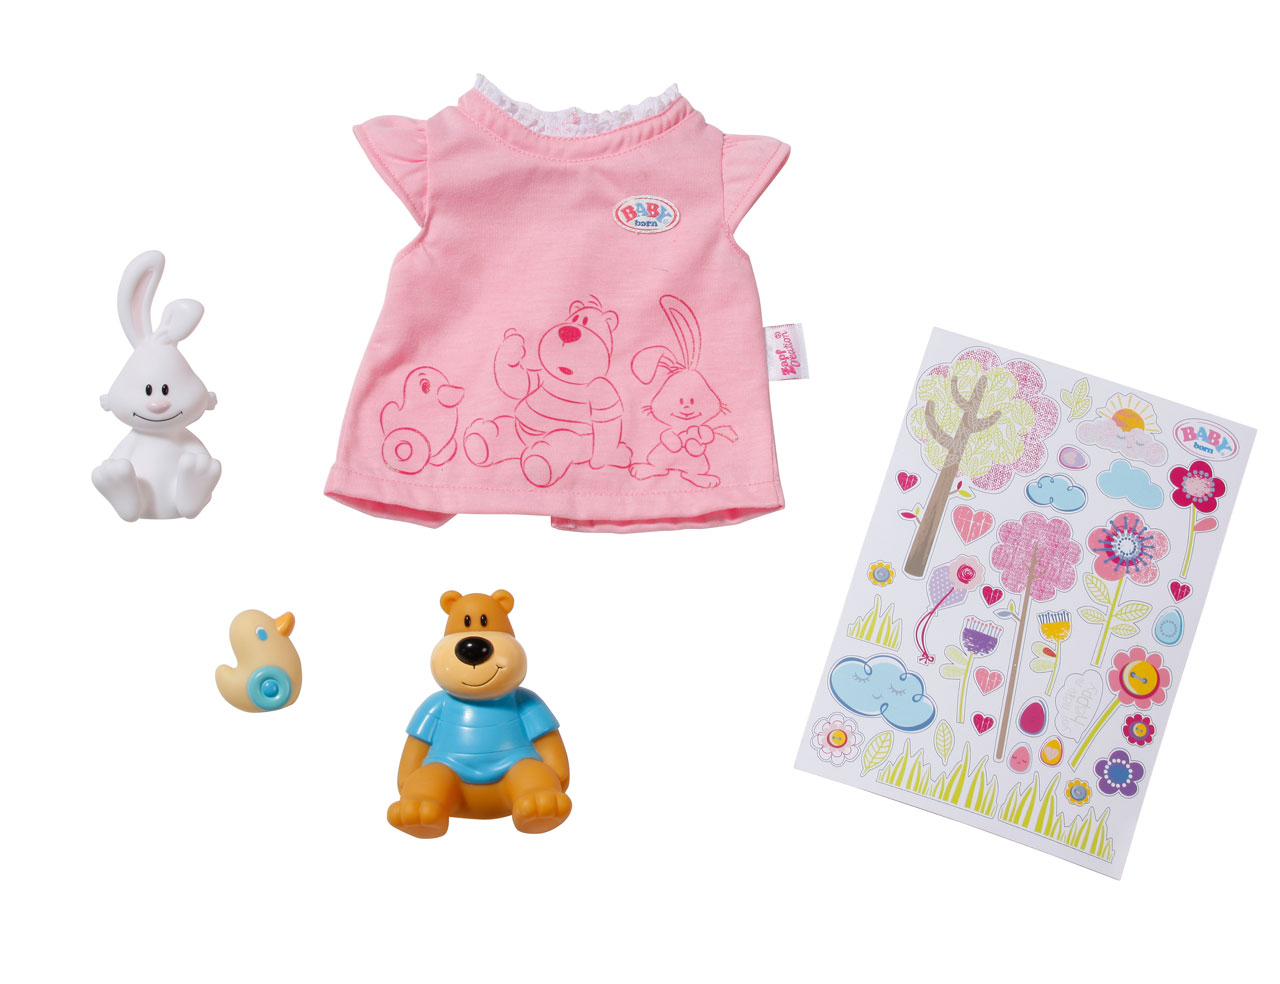 Baby Born Toy Set With Characters Baby Born Prima Toys